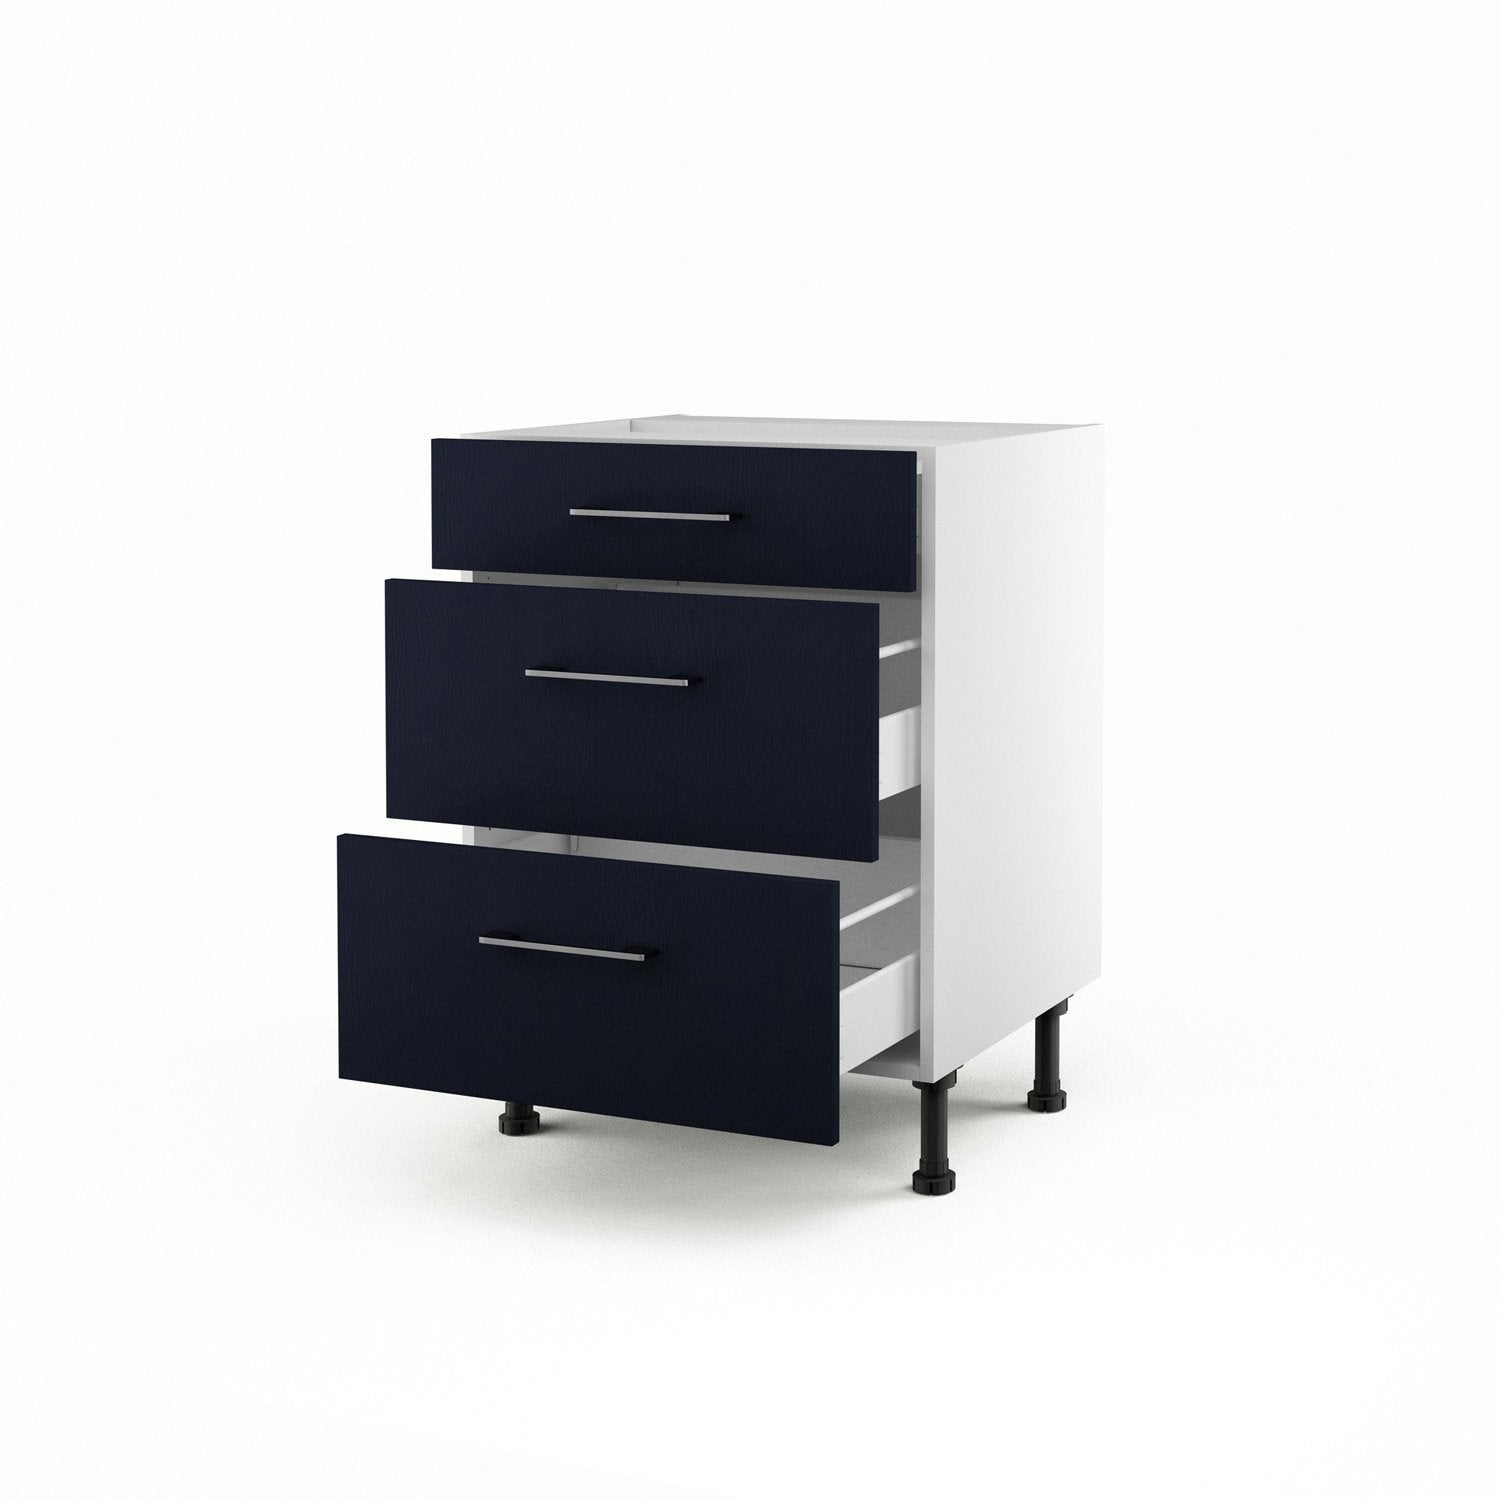 meuble de cuisine bas bleu 3 tiroirs topaze x x cm leroy merlin. Black Bedroom Furniture Sets. Home Design Ideas